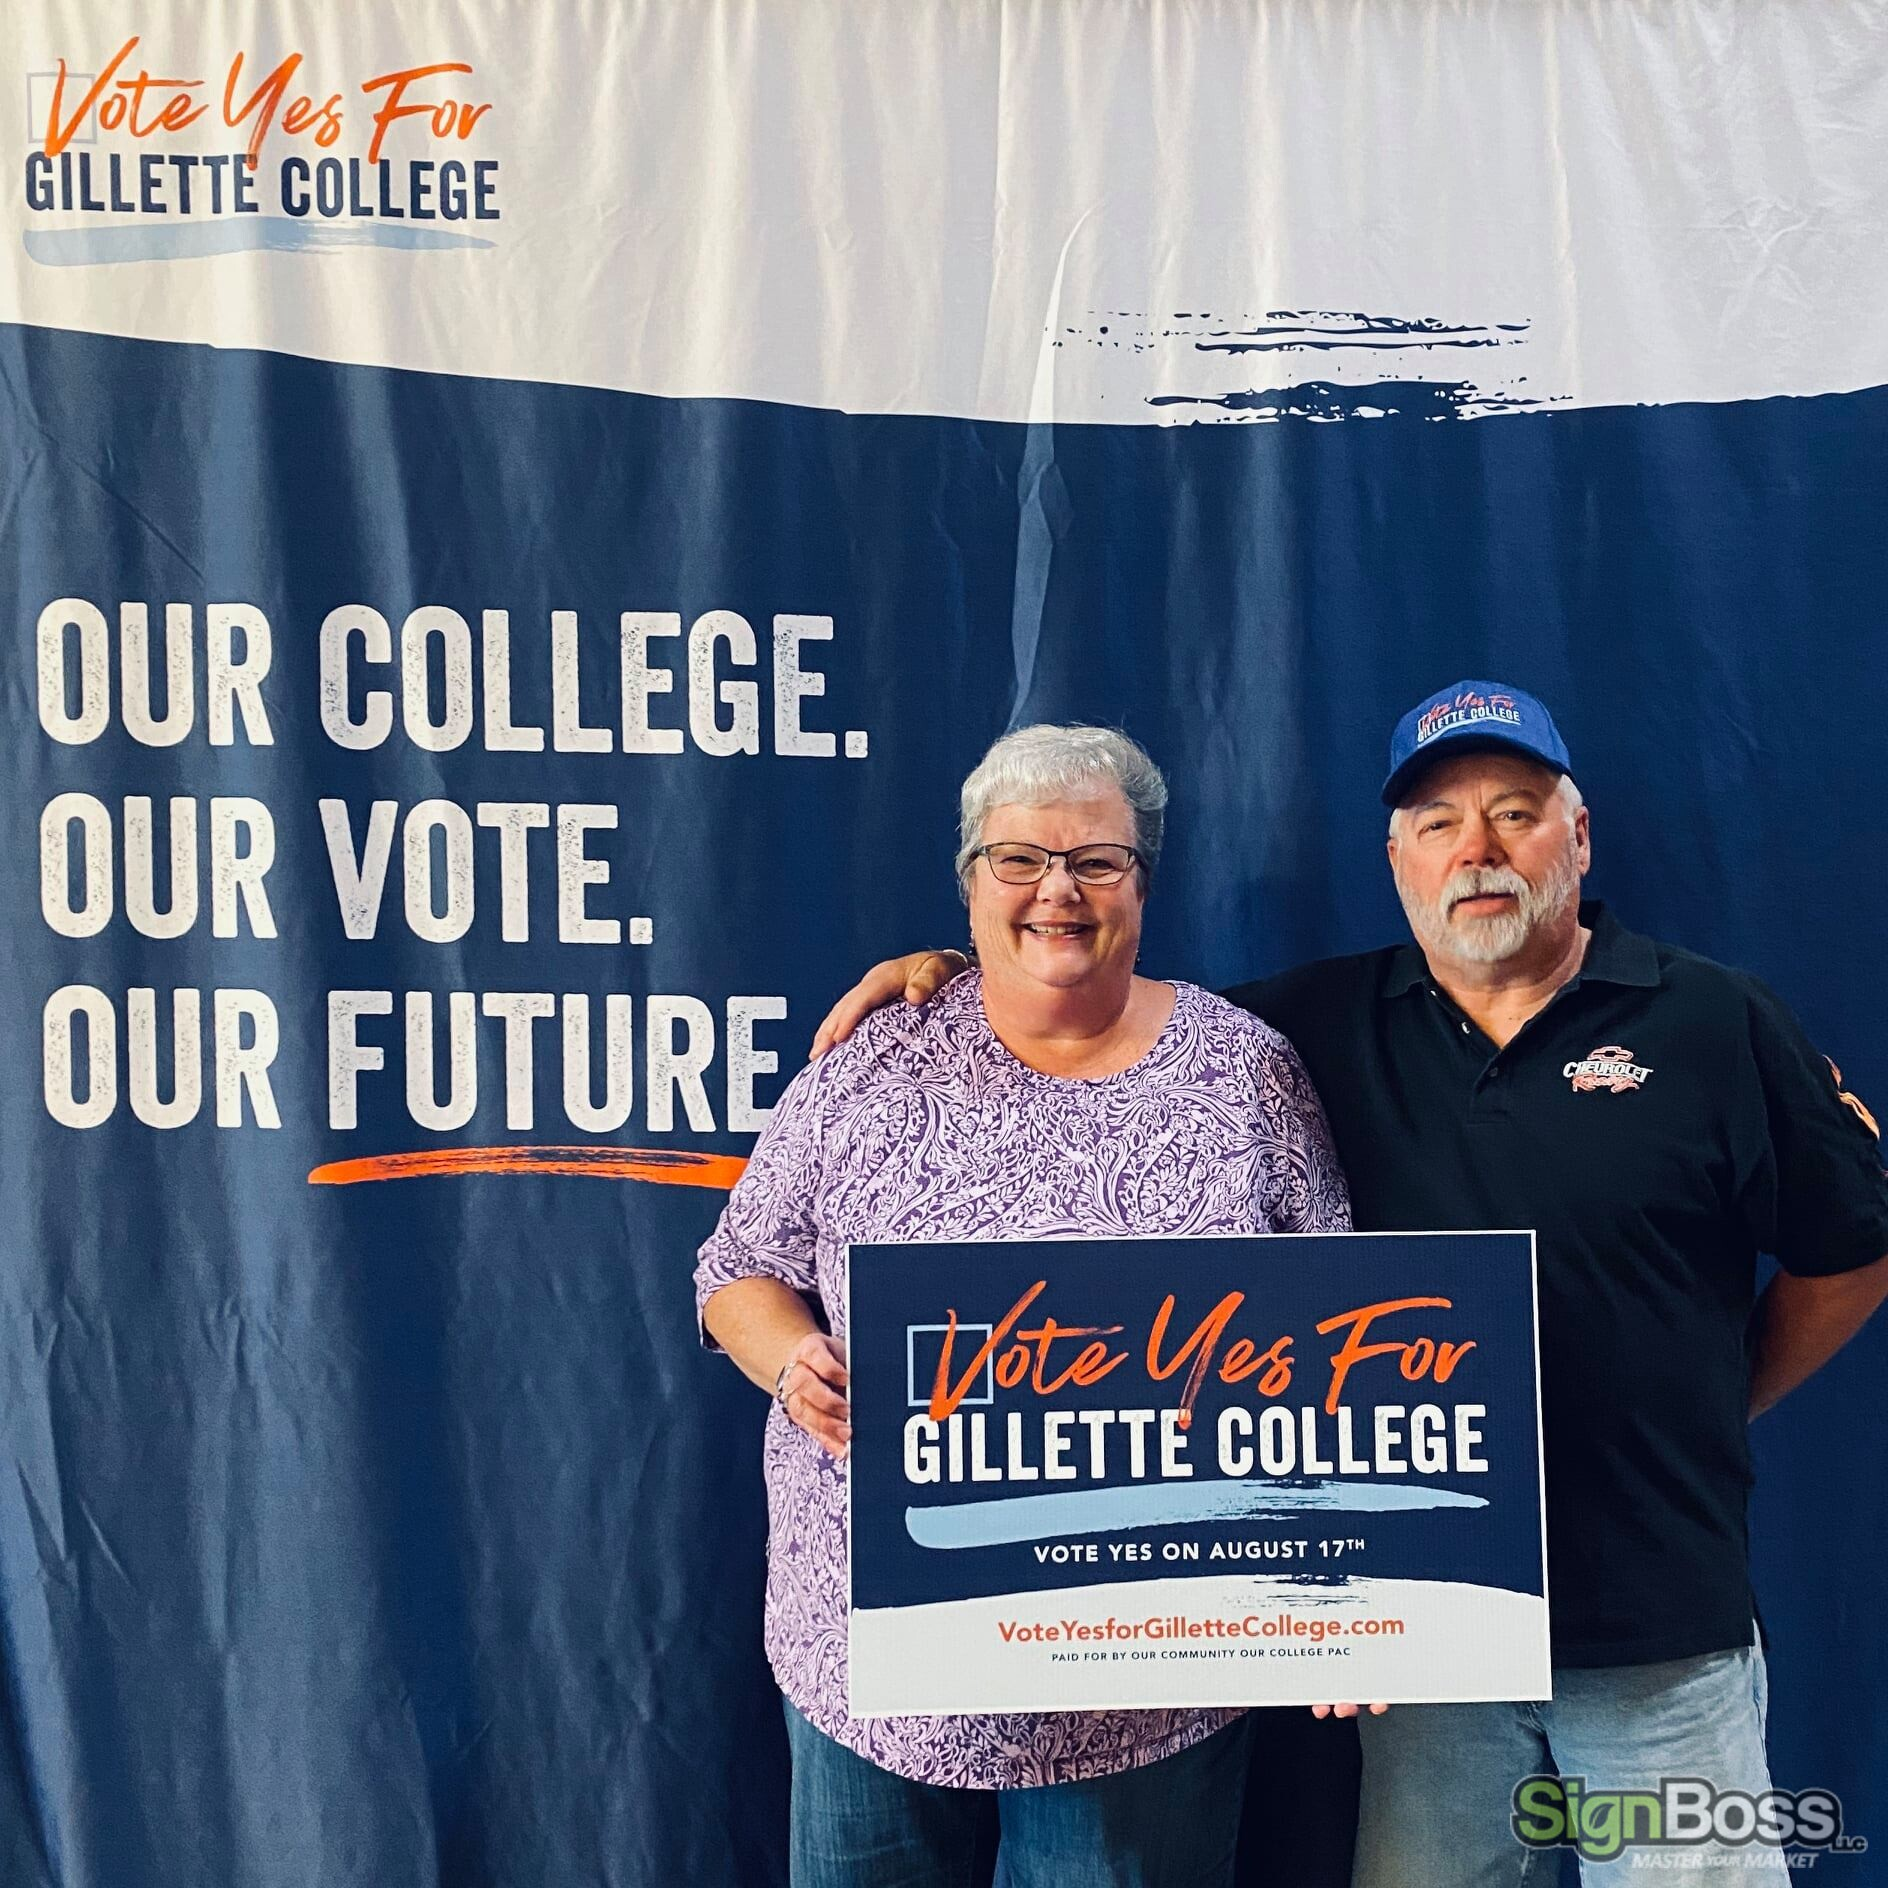 Signs and graphics for Vote Yes for Gillette College campaign